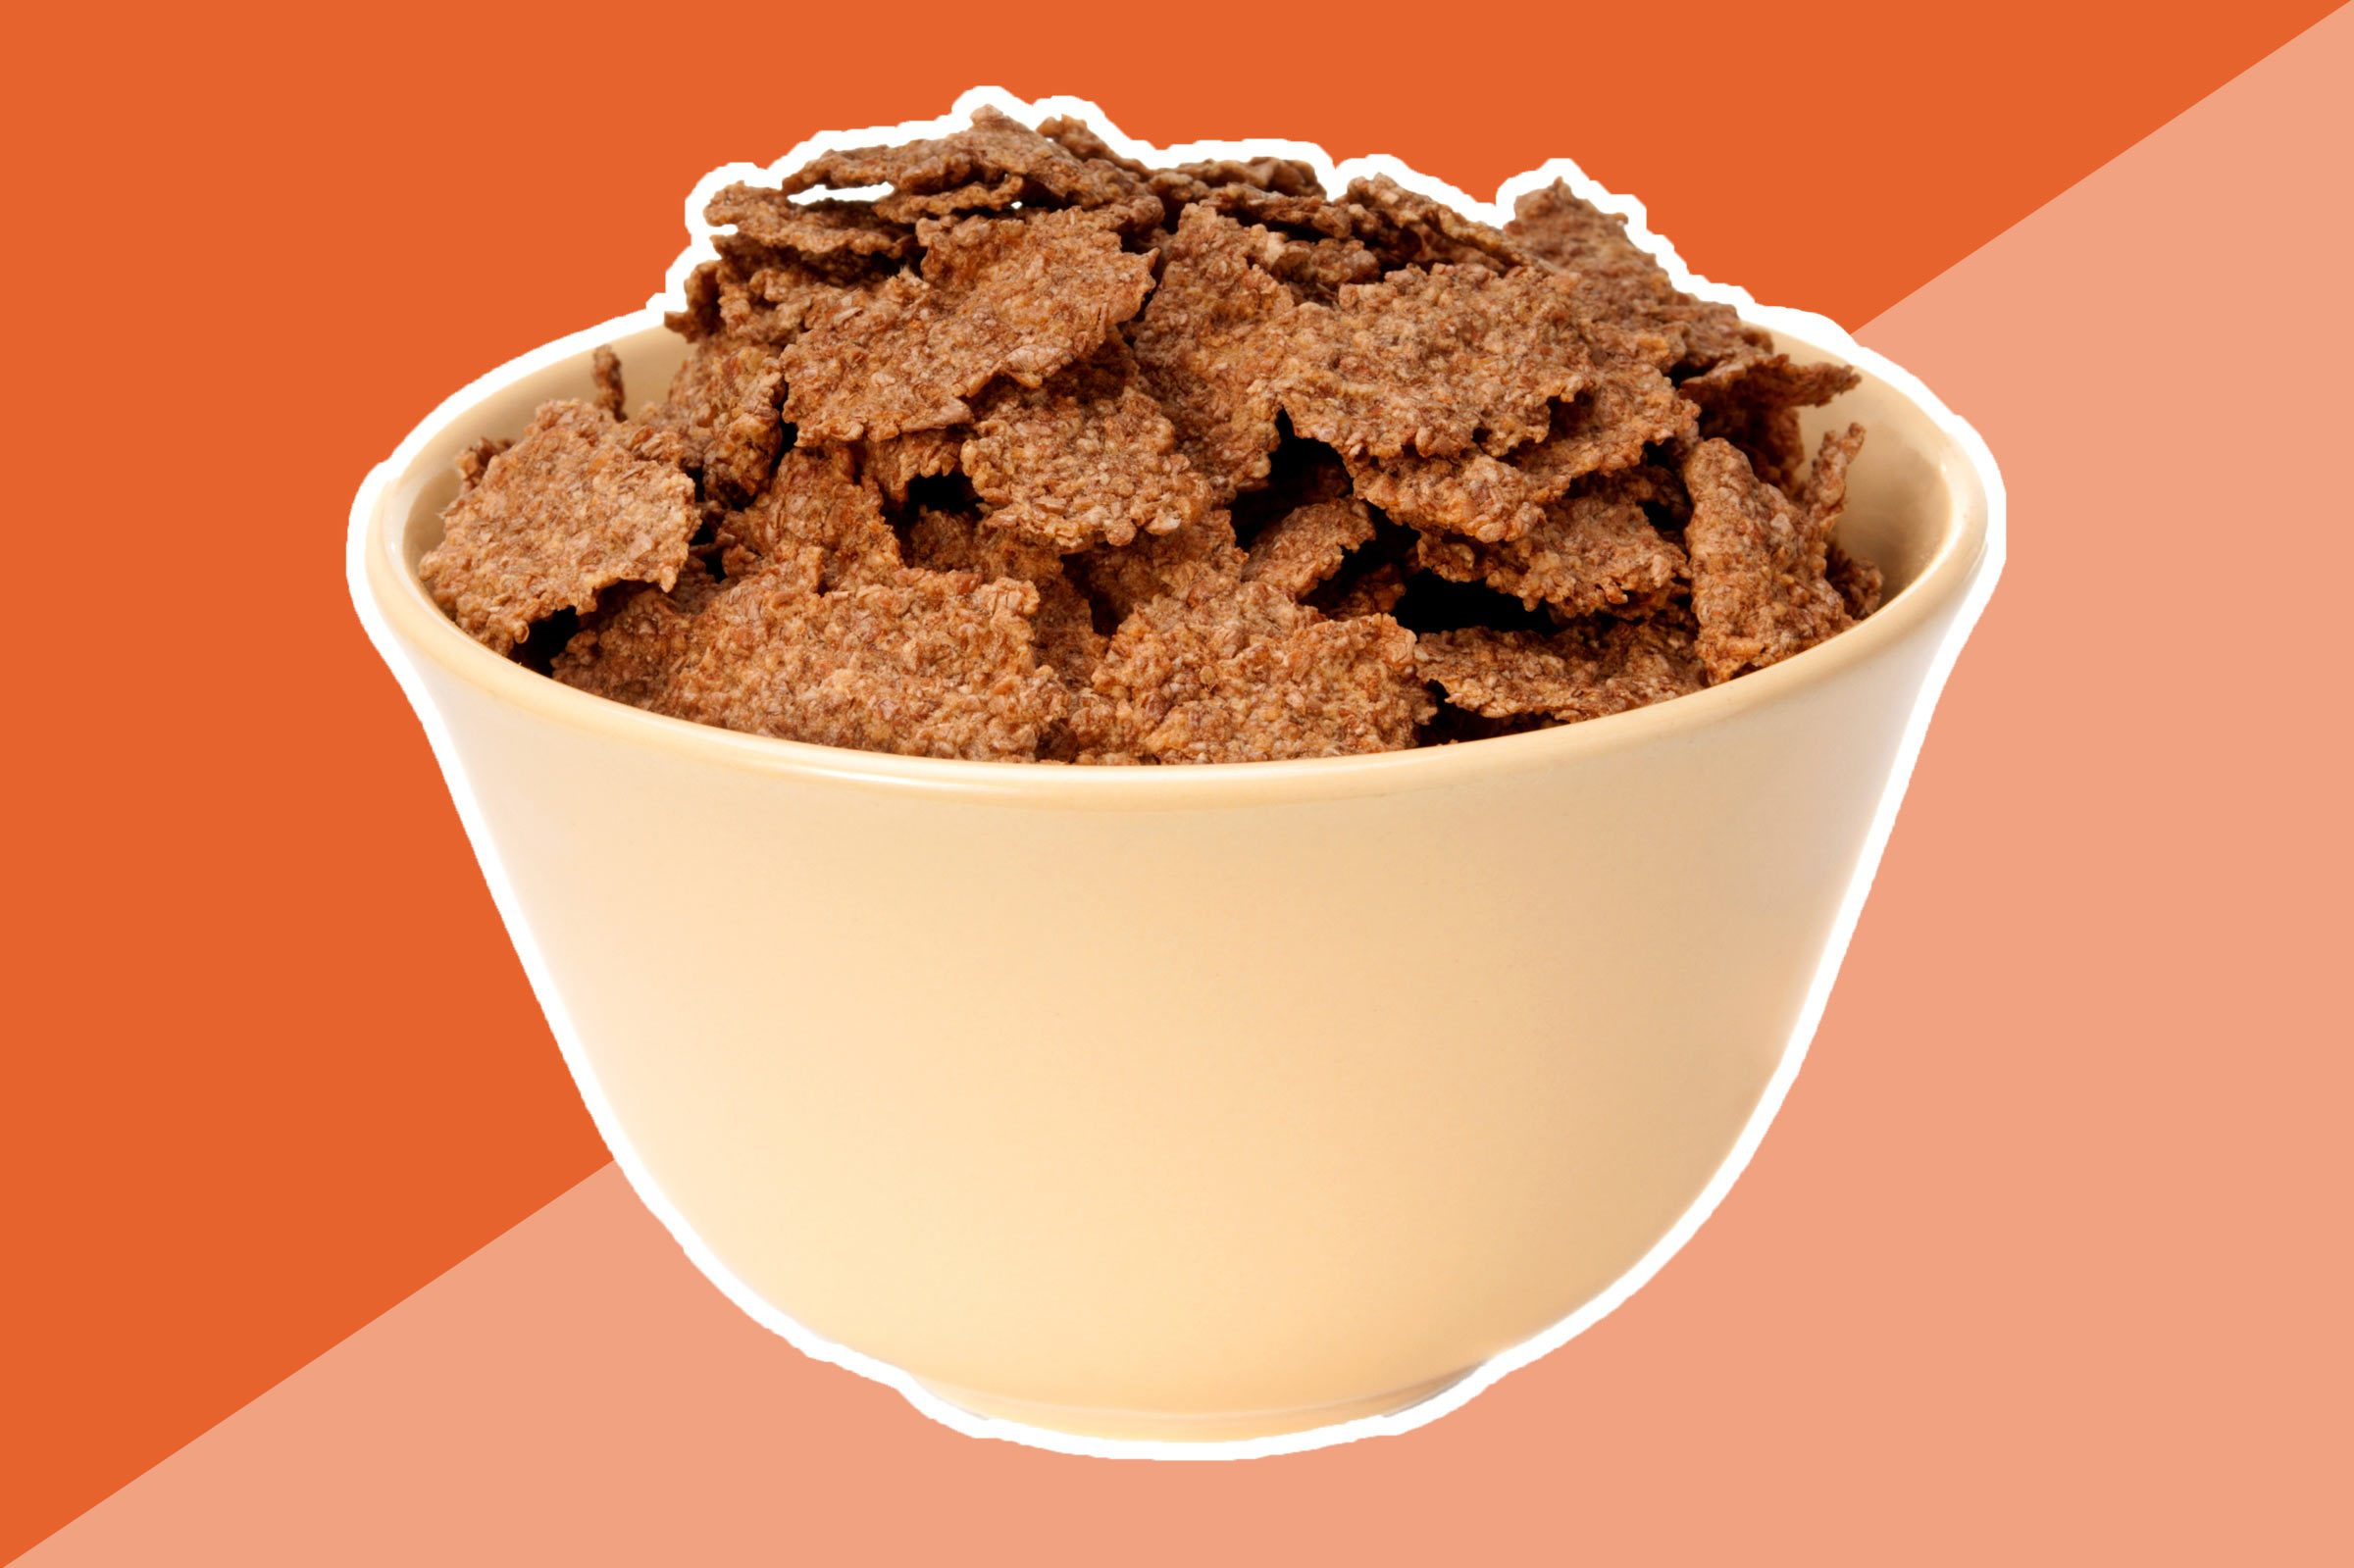 Eat a bowl of all-bran cereal